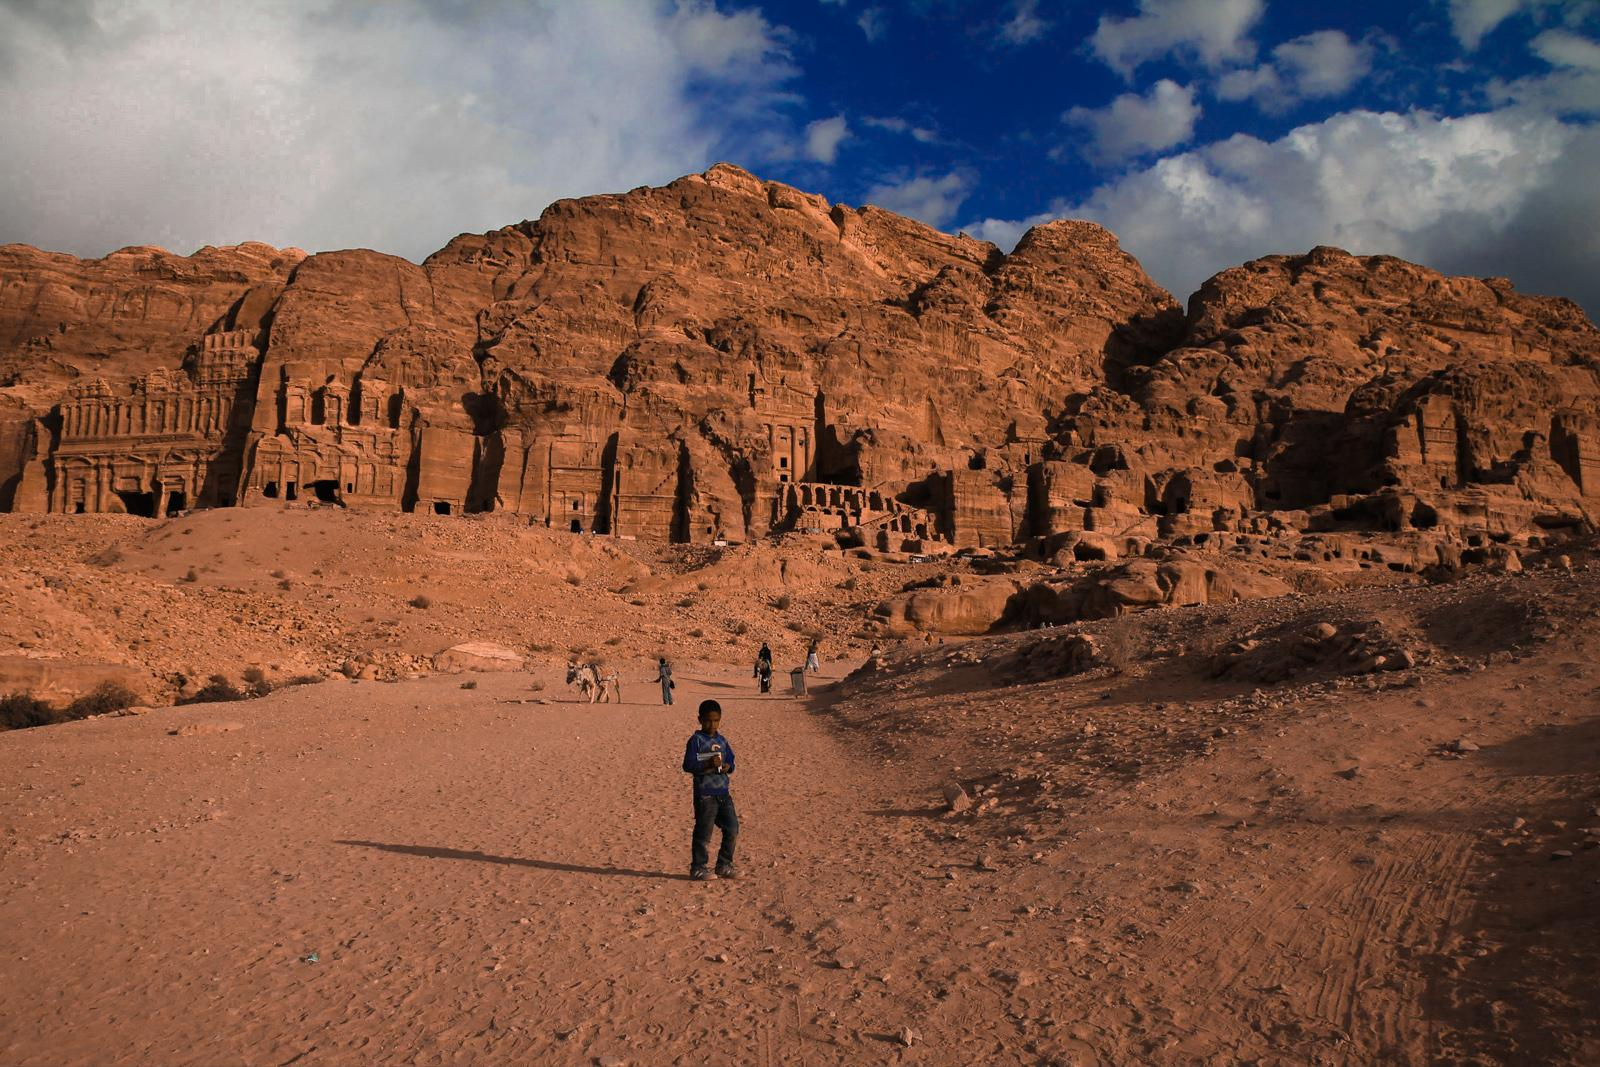 The Inhabitants of Petra, Jordan